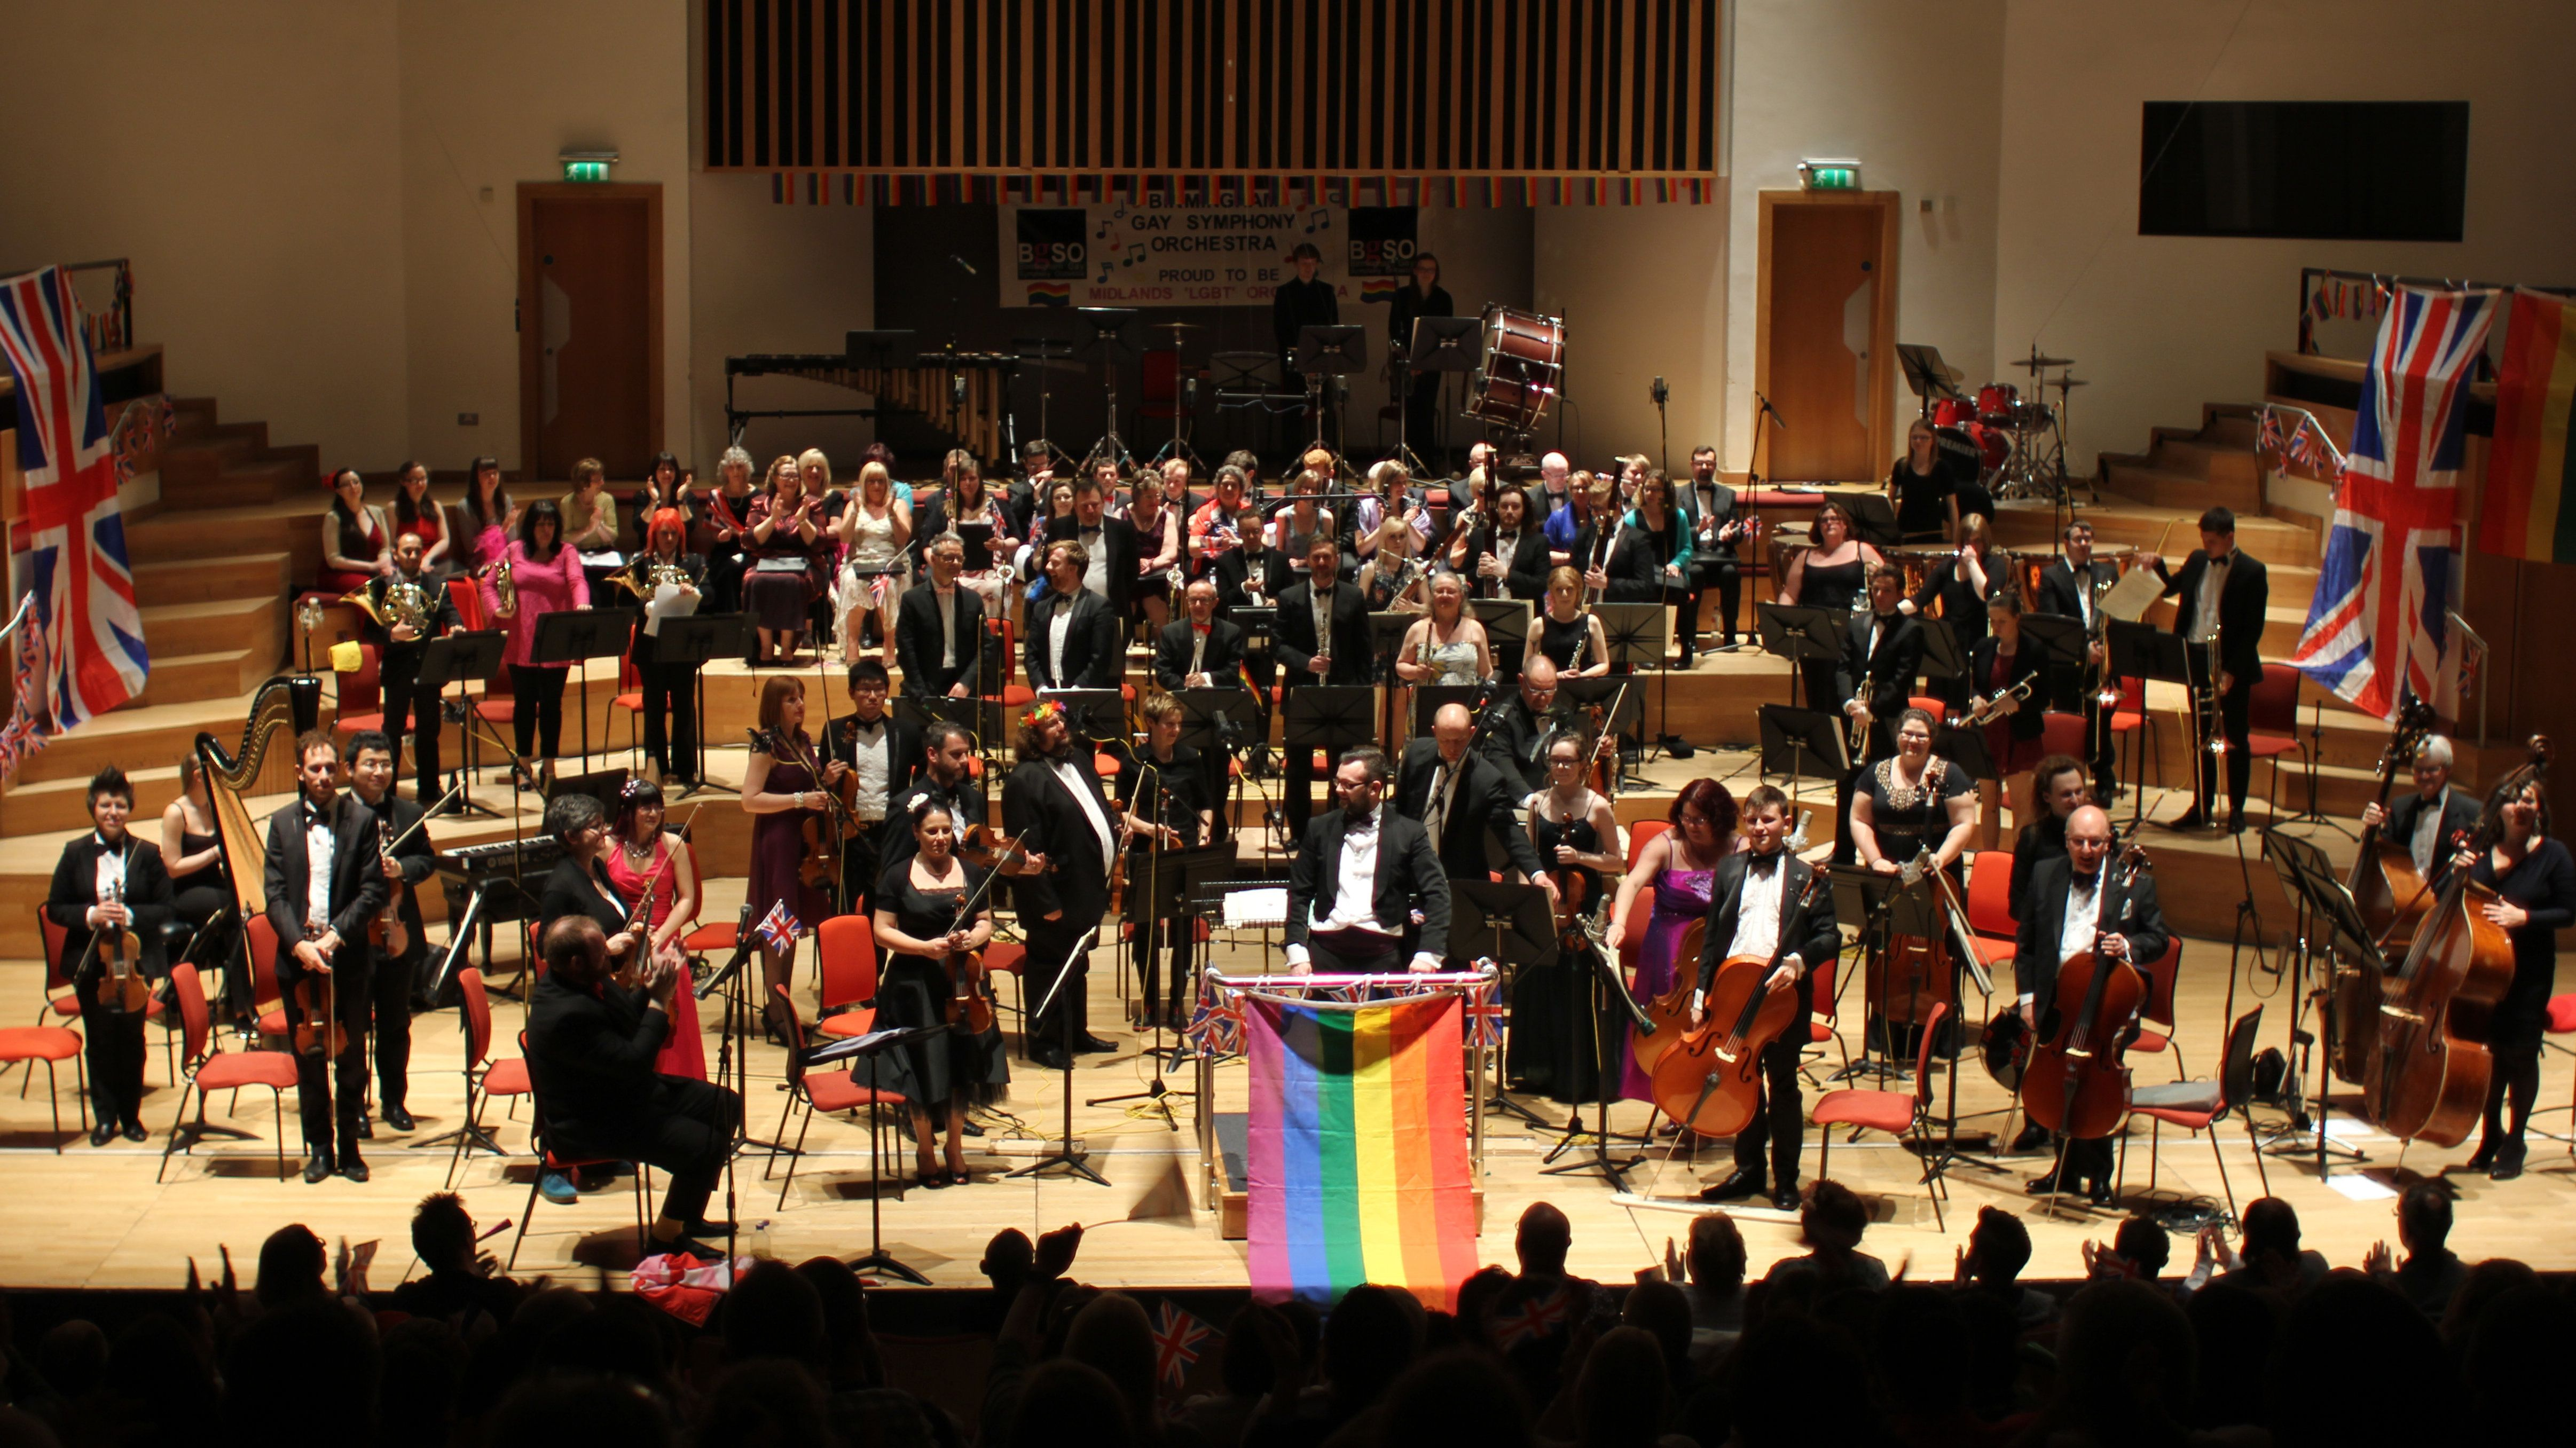 This LGBT Orchestra Is Creating Community: 'I Have Never Met A Friendlier Group Of